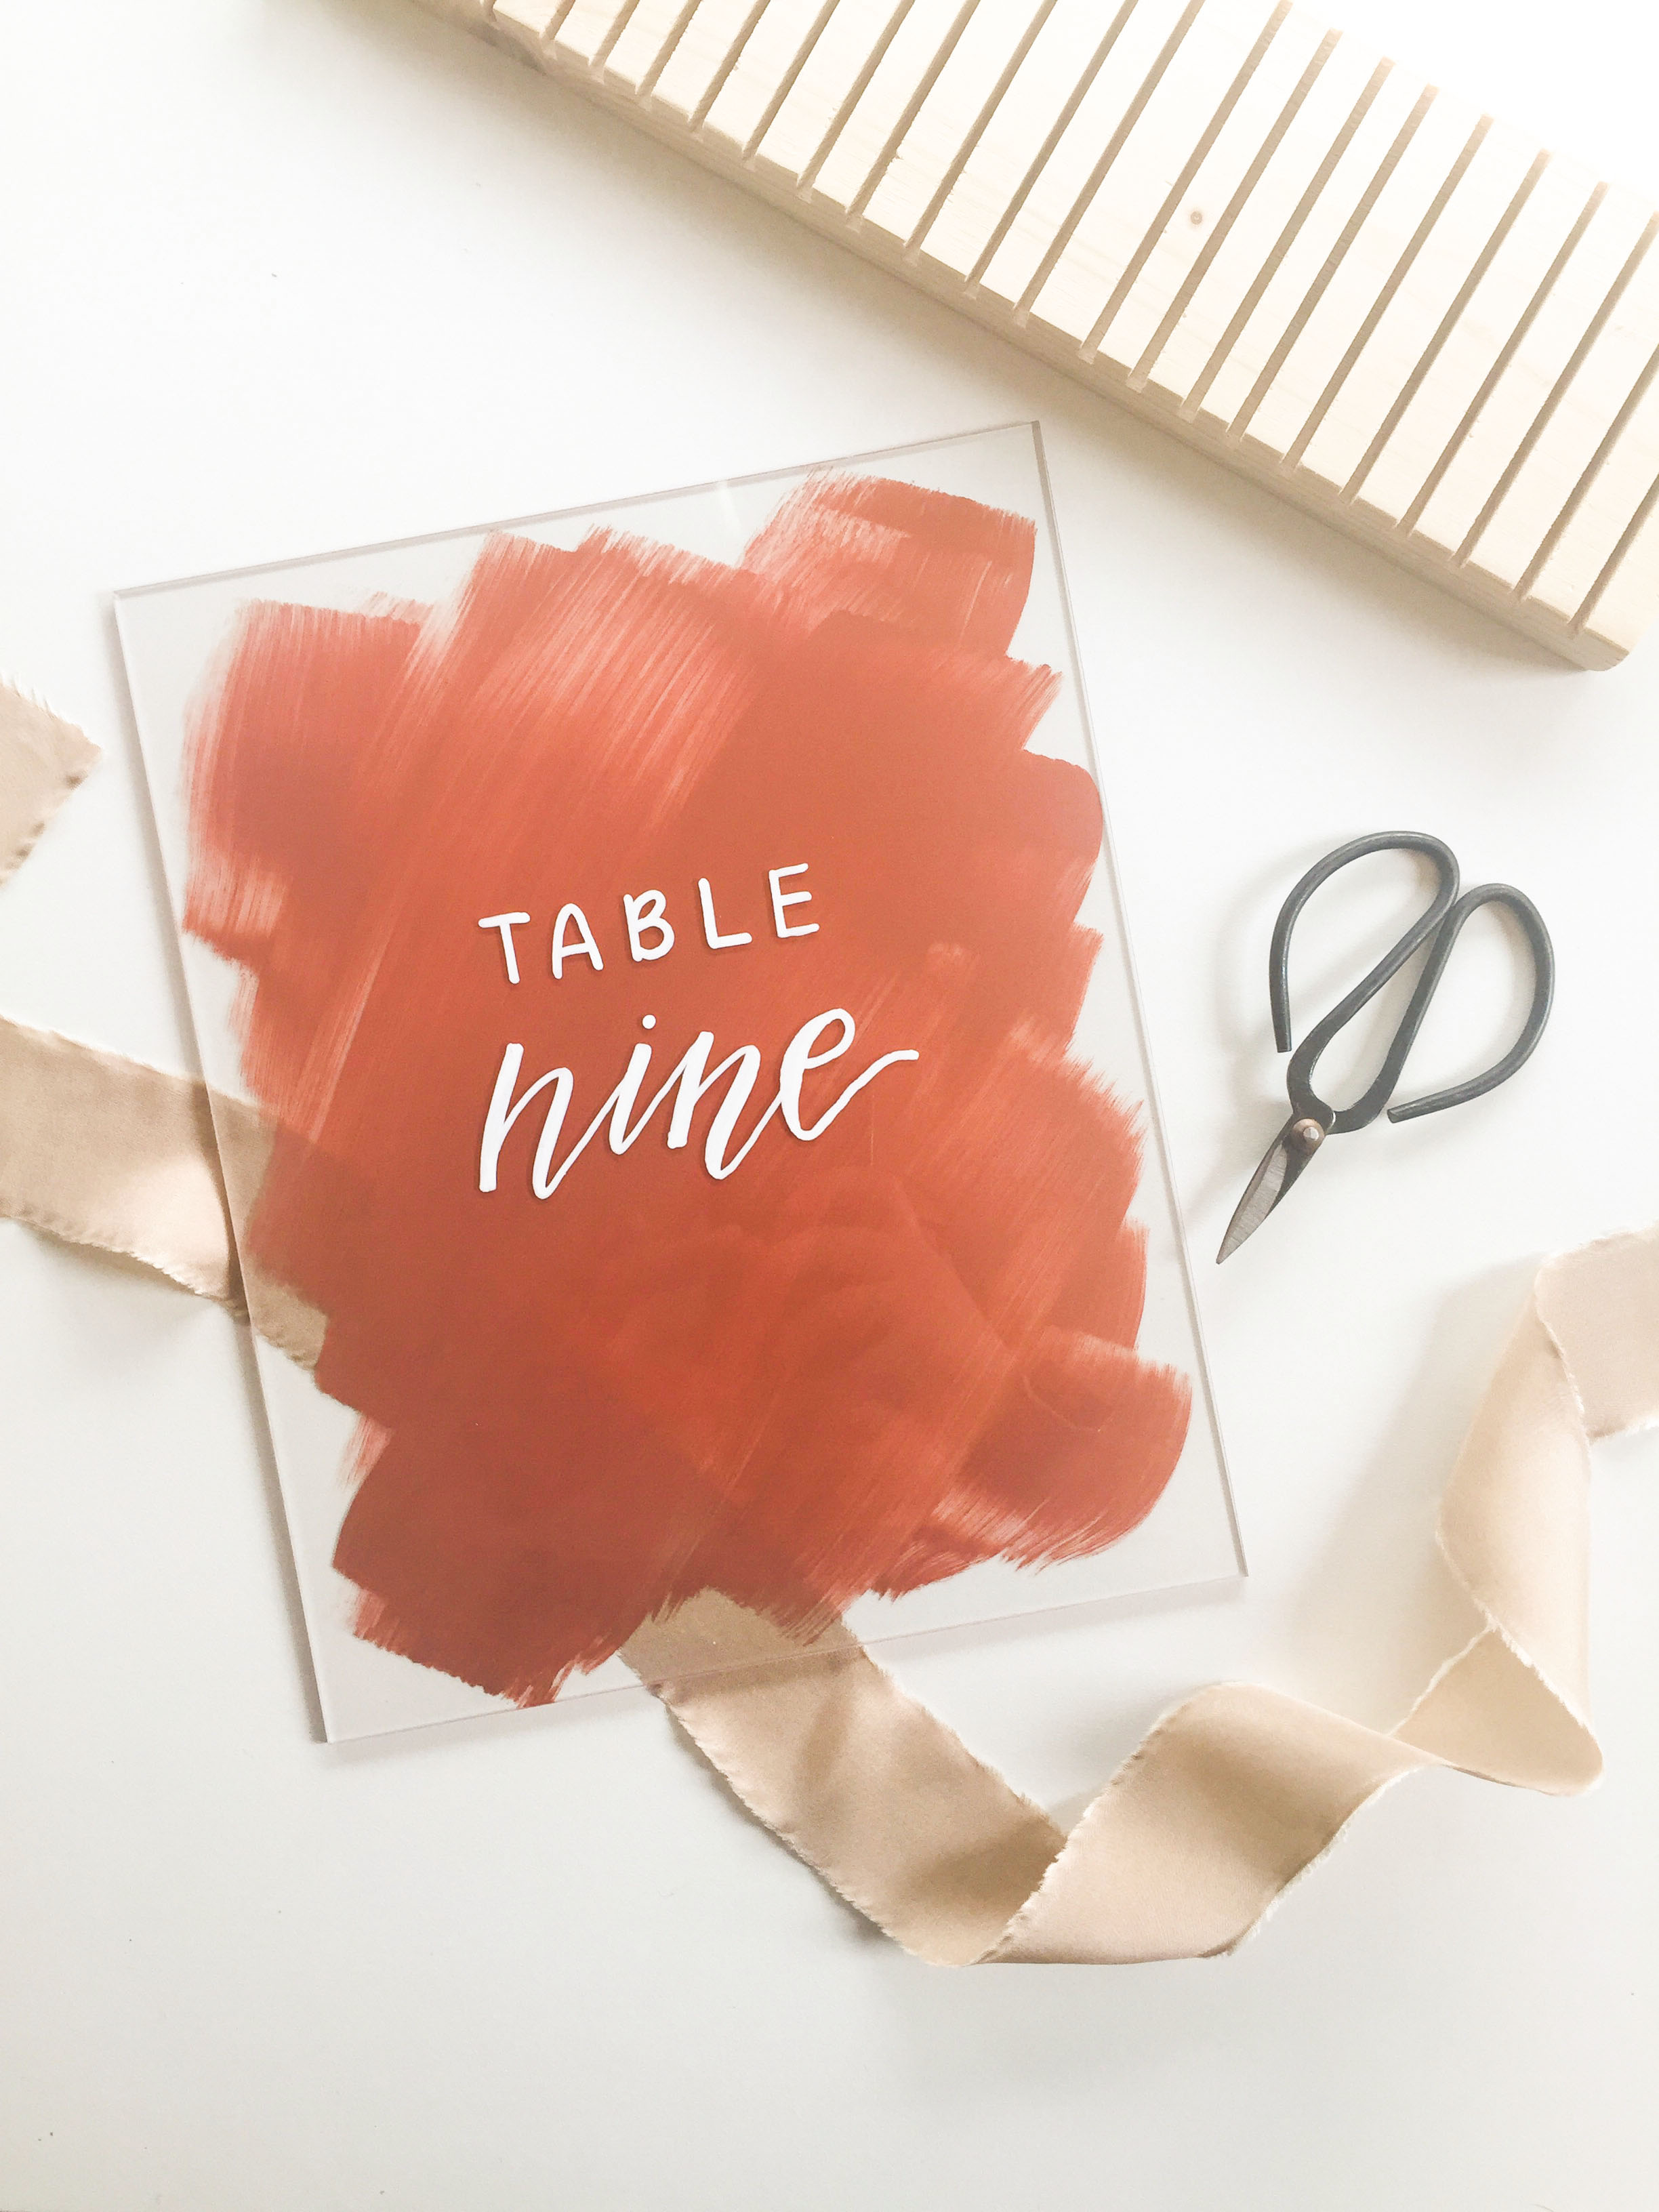 Stationery and Calligraphy on Your Wedding Day. All about menus, place cards, escort cards, seating charts, programs, and other paper goods on your wedding day. Wedding Place Cards. Photo by Cassi Claire.